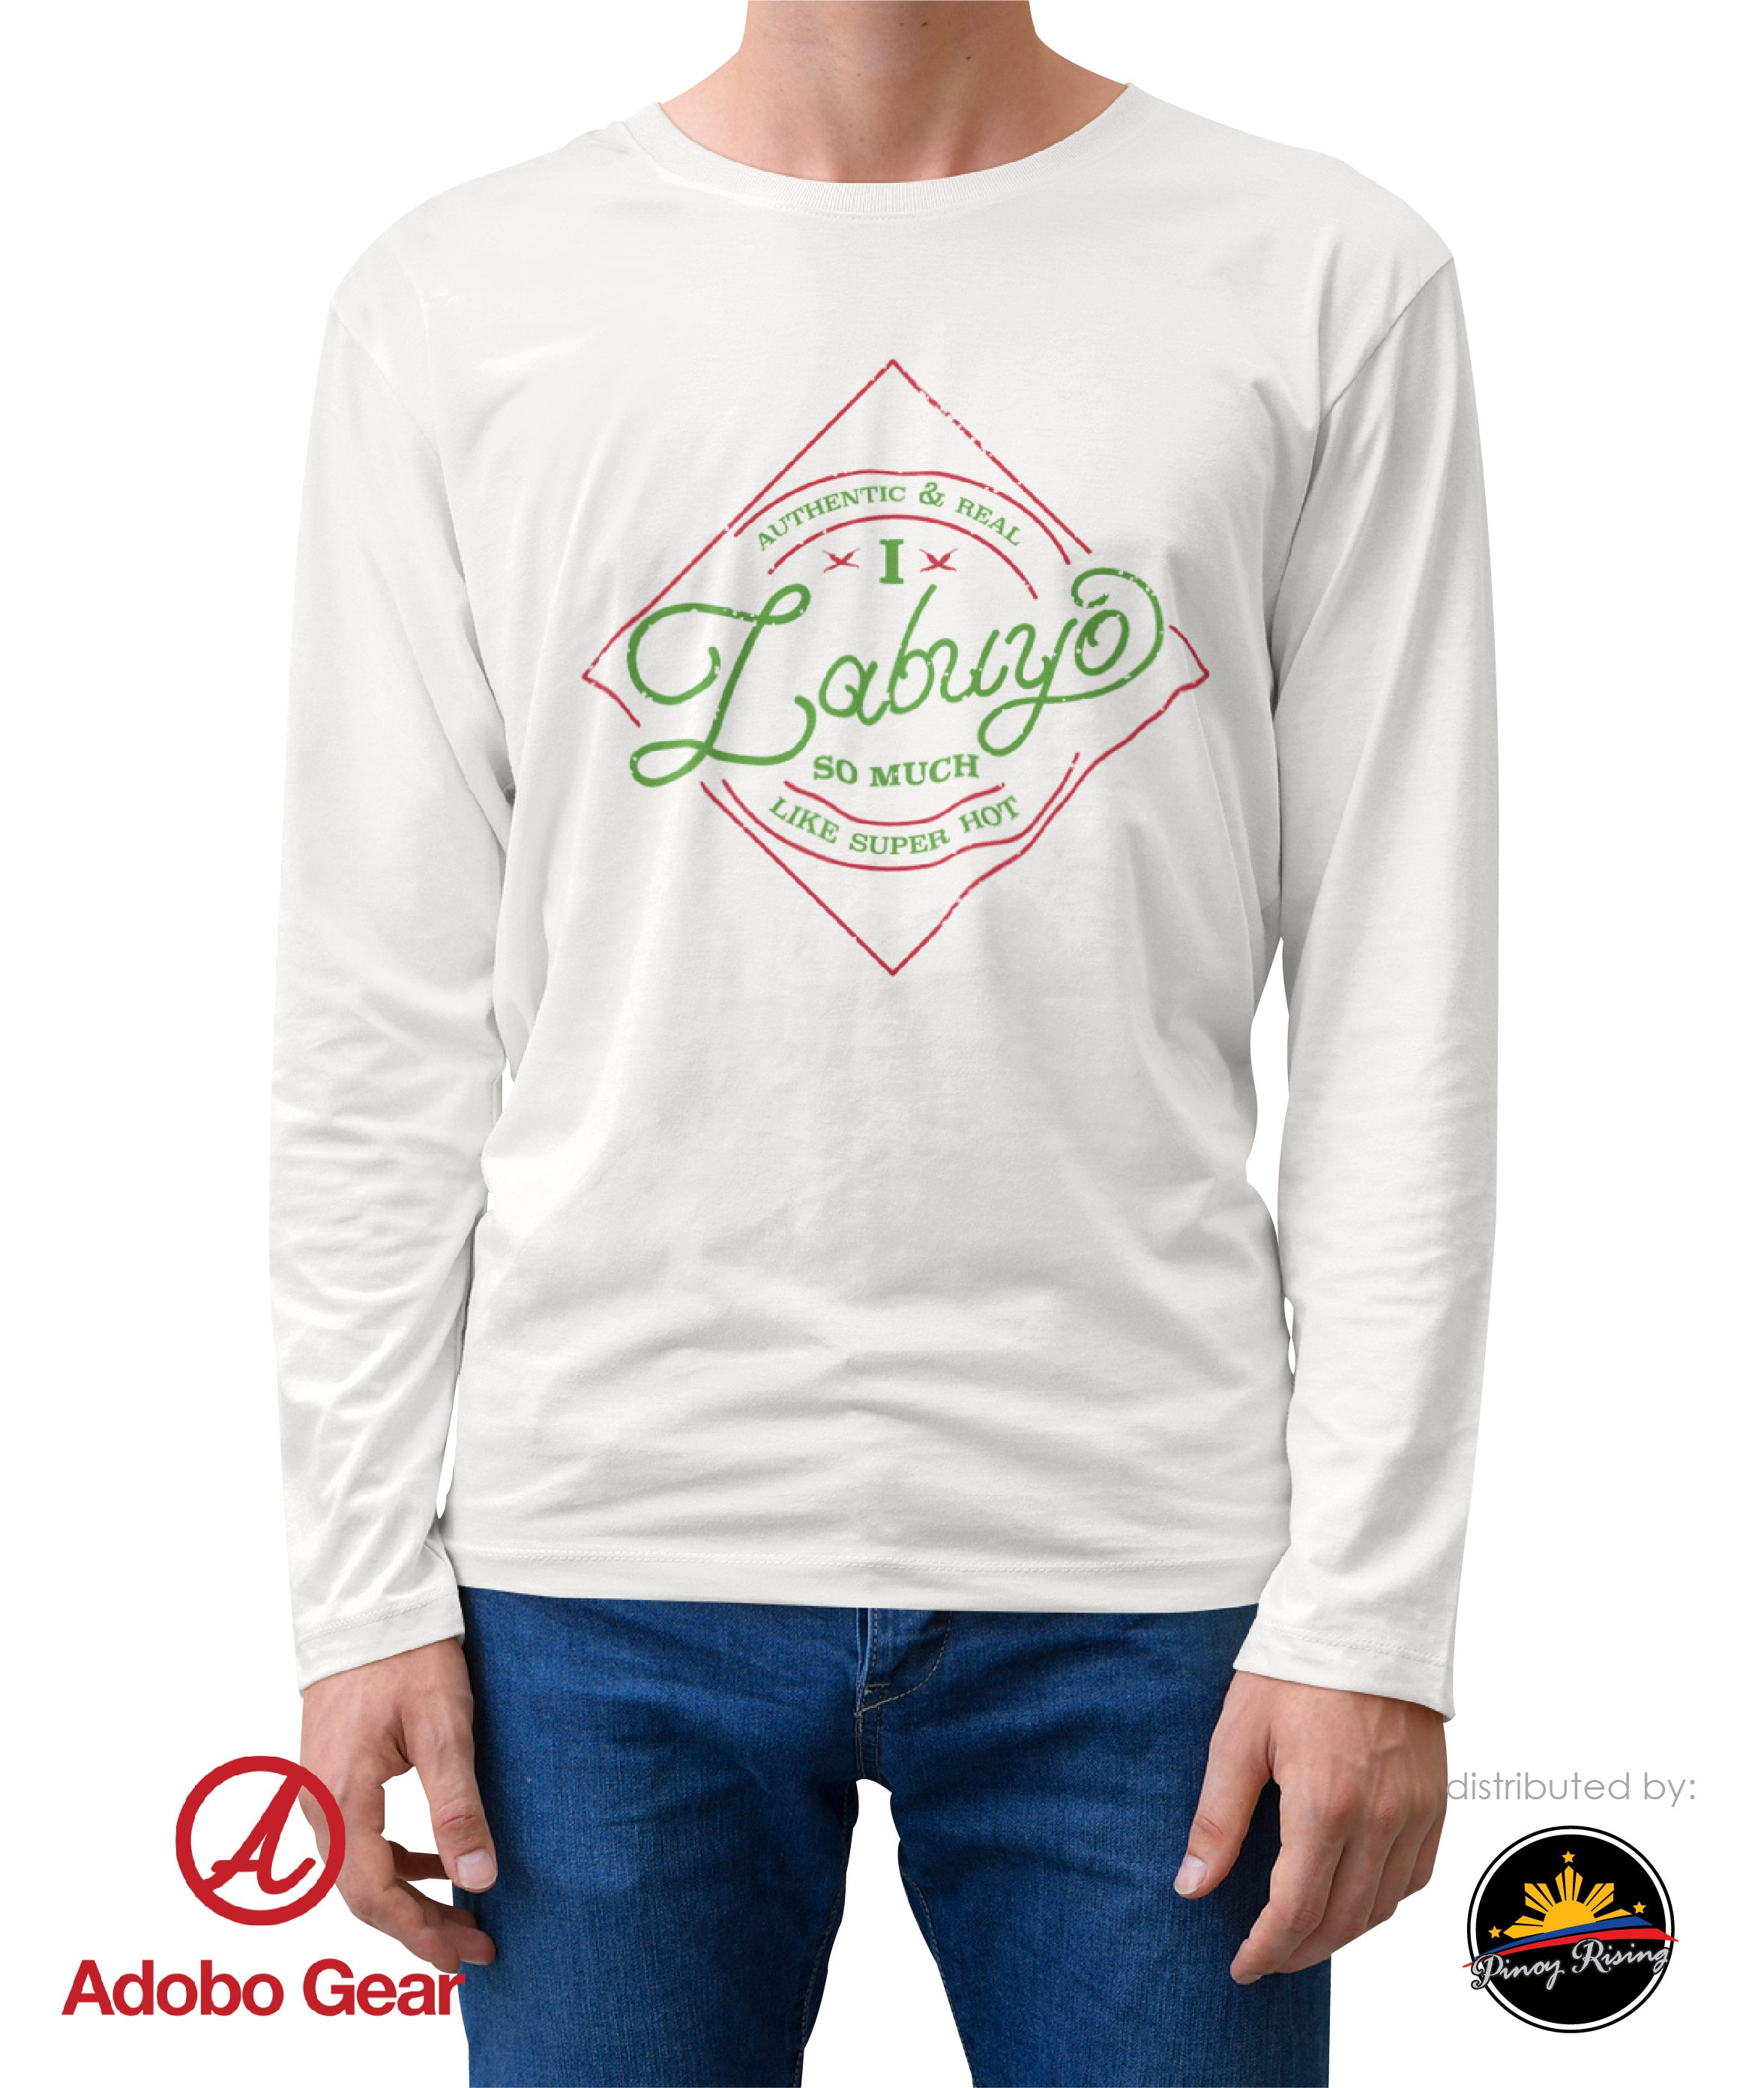 Filipino Long Sleeve Shirt - I Labuyo So Much by Adobo Gear